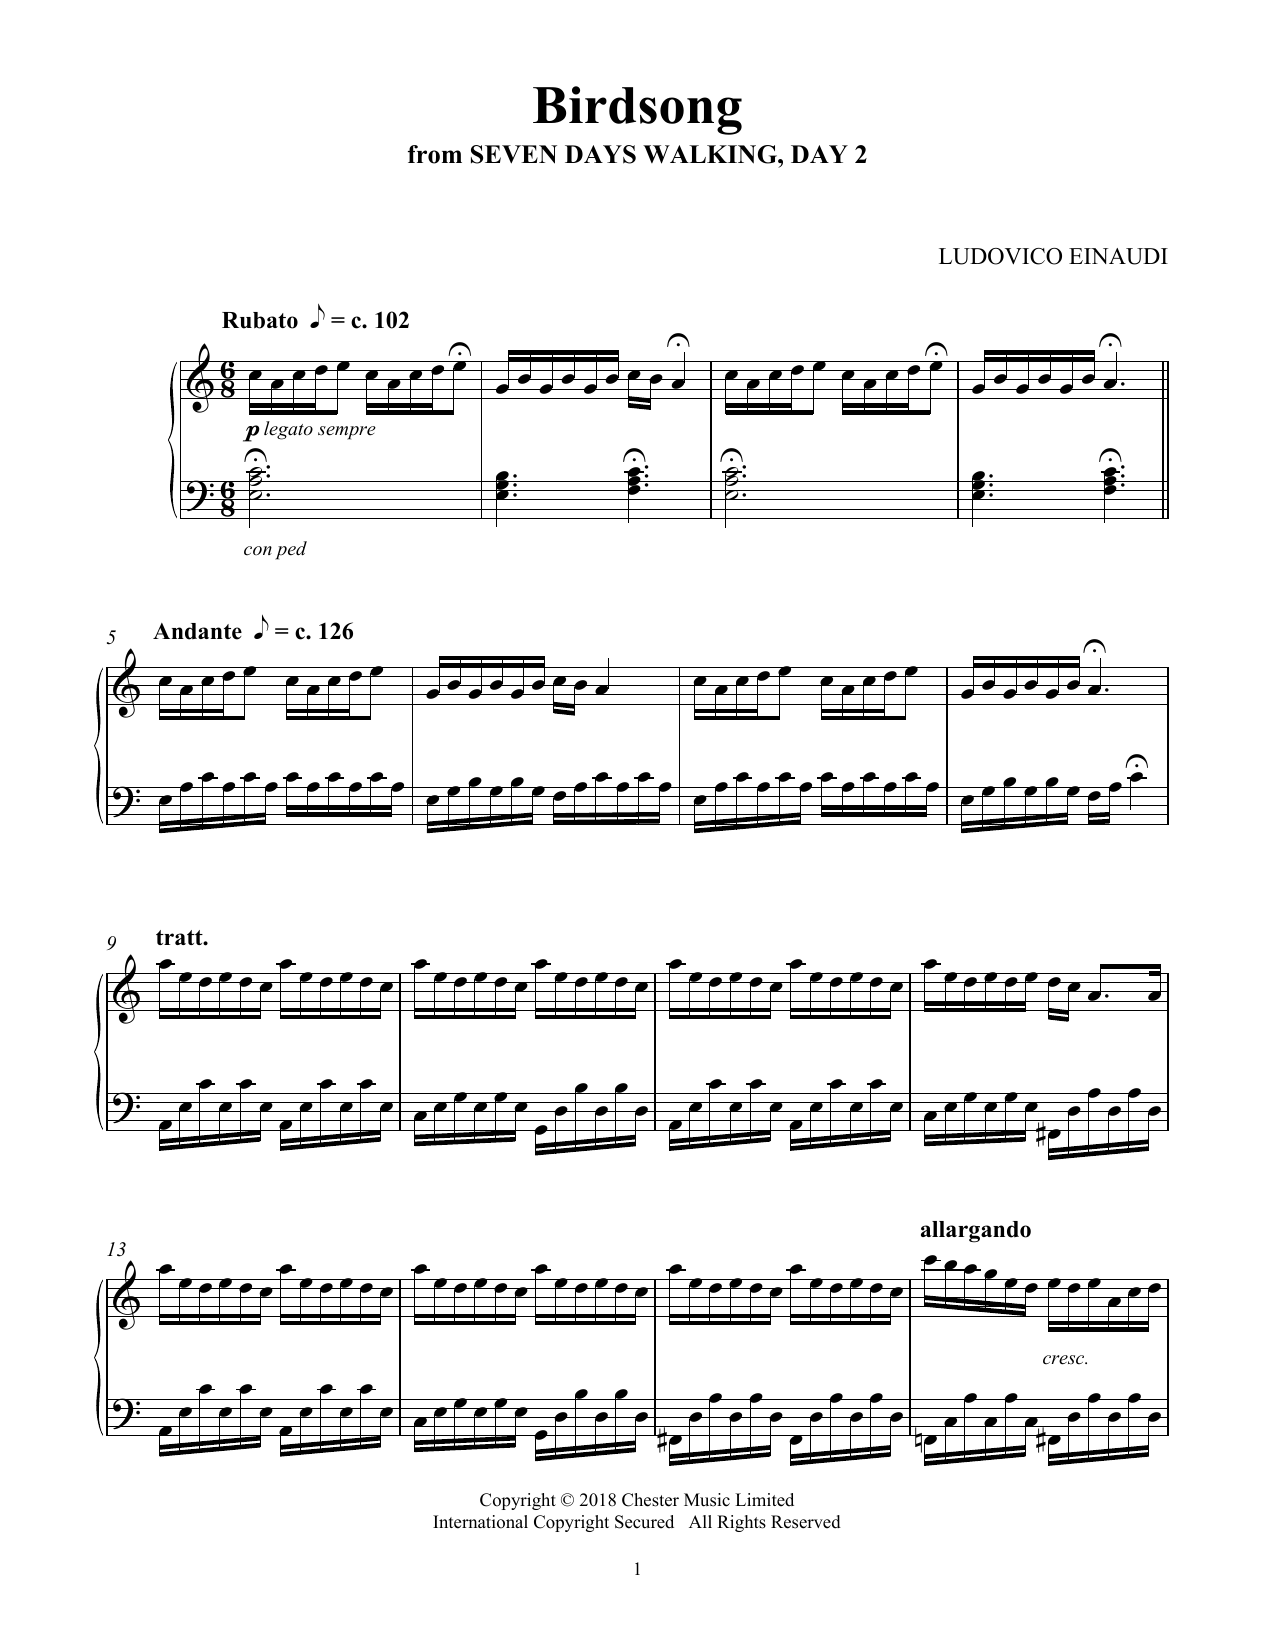 Ludovico Einaudi Birdsong (from Seven Days Walking: Day 2) sheet music notes and chords